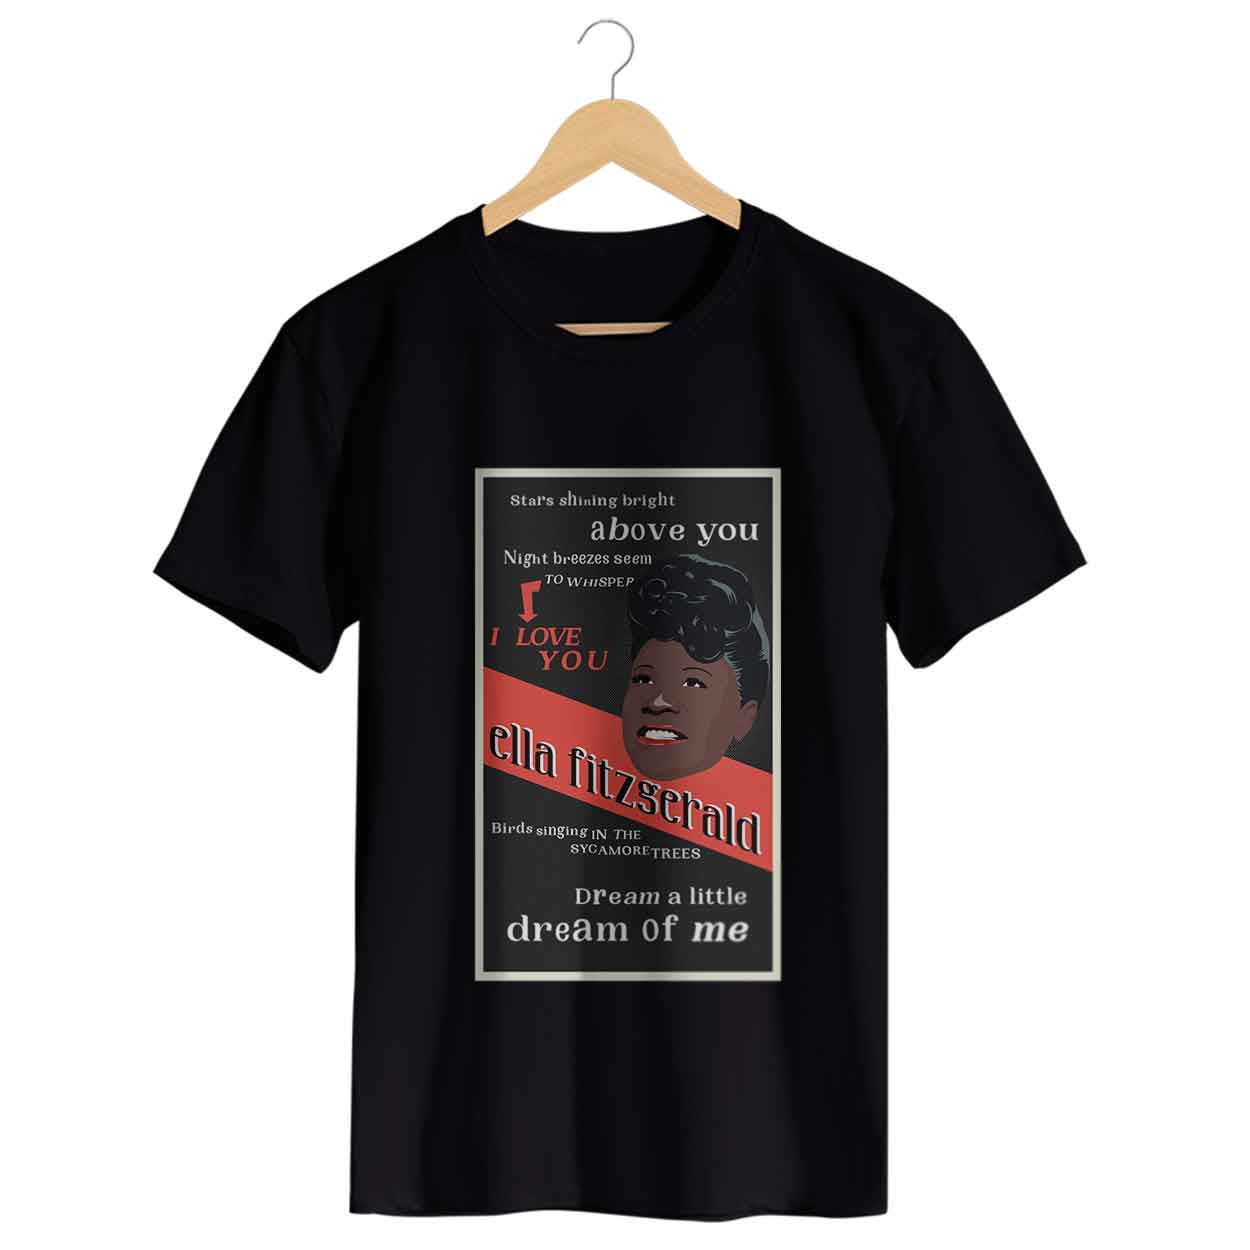 Camiseta - Dream A Little Dream Of Me - Ella Fitzgerald - Masculino